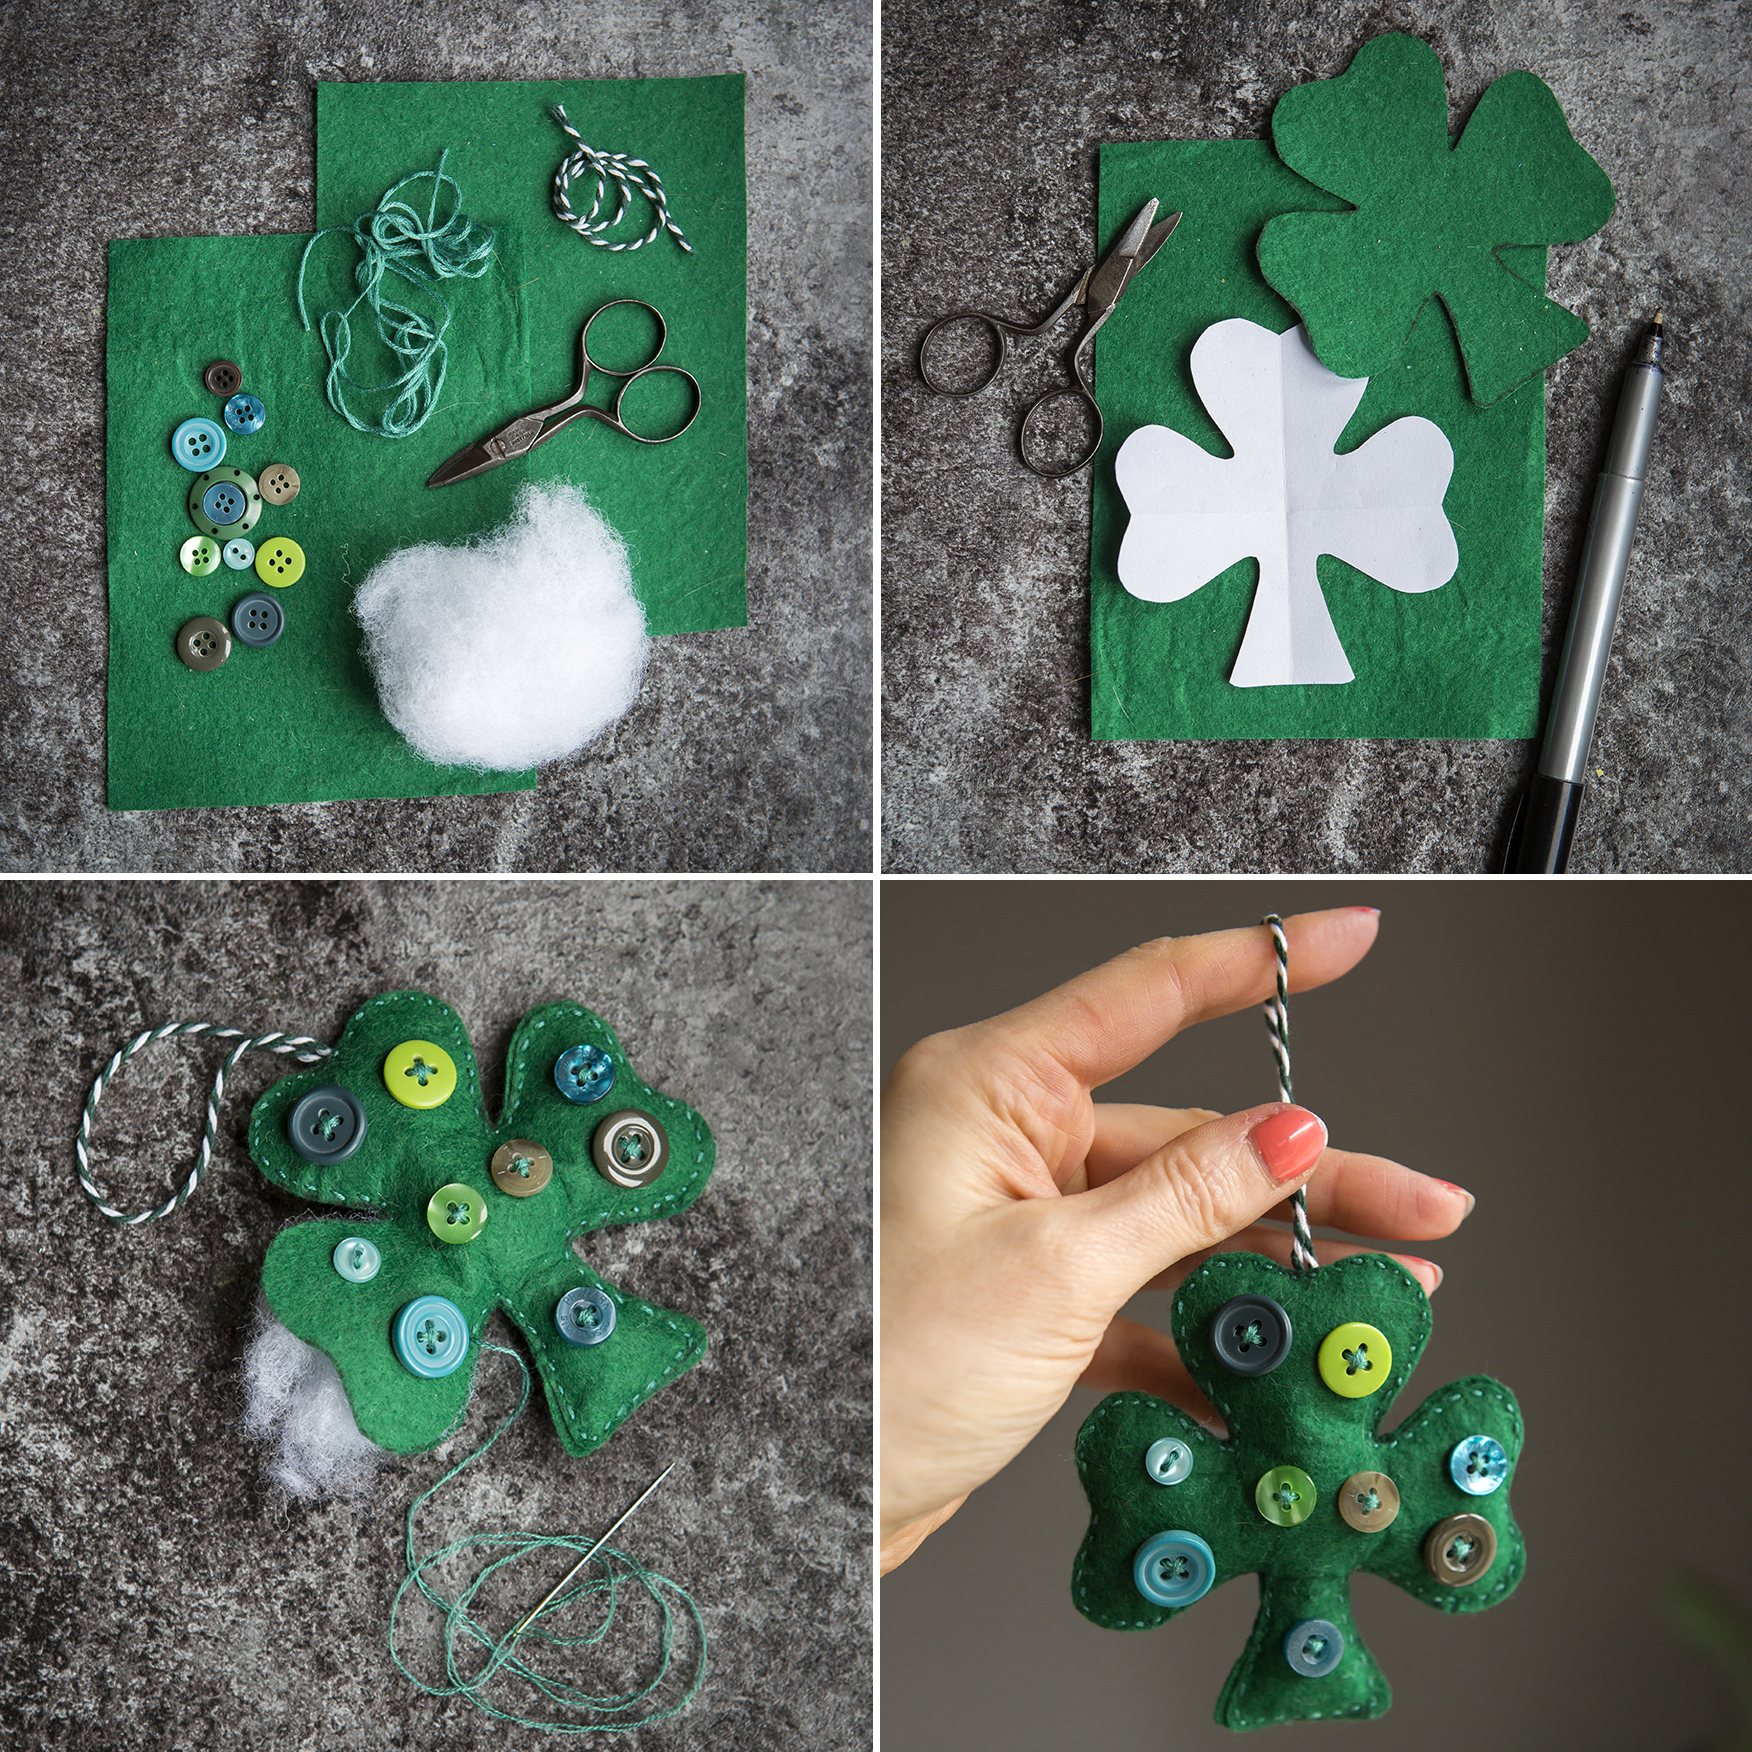 St. Patrick's Day Handmade Shamrock | 52 Weekends | Stacy Grant | Creative Photography